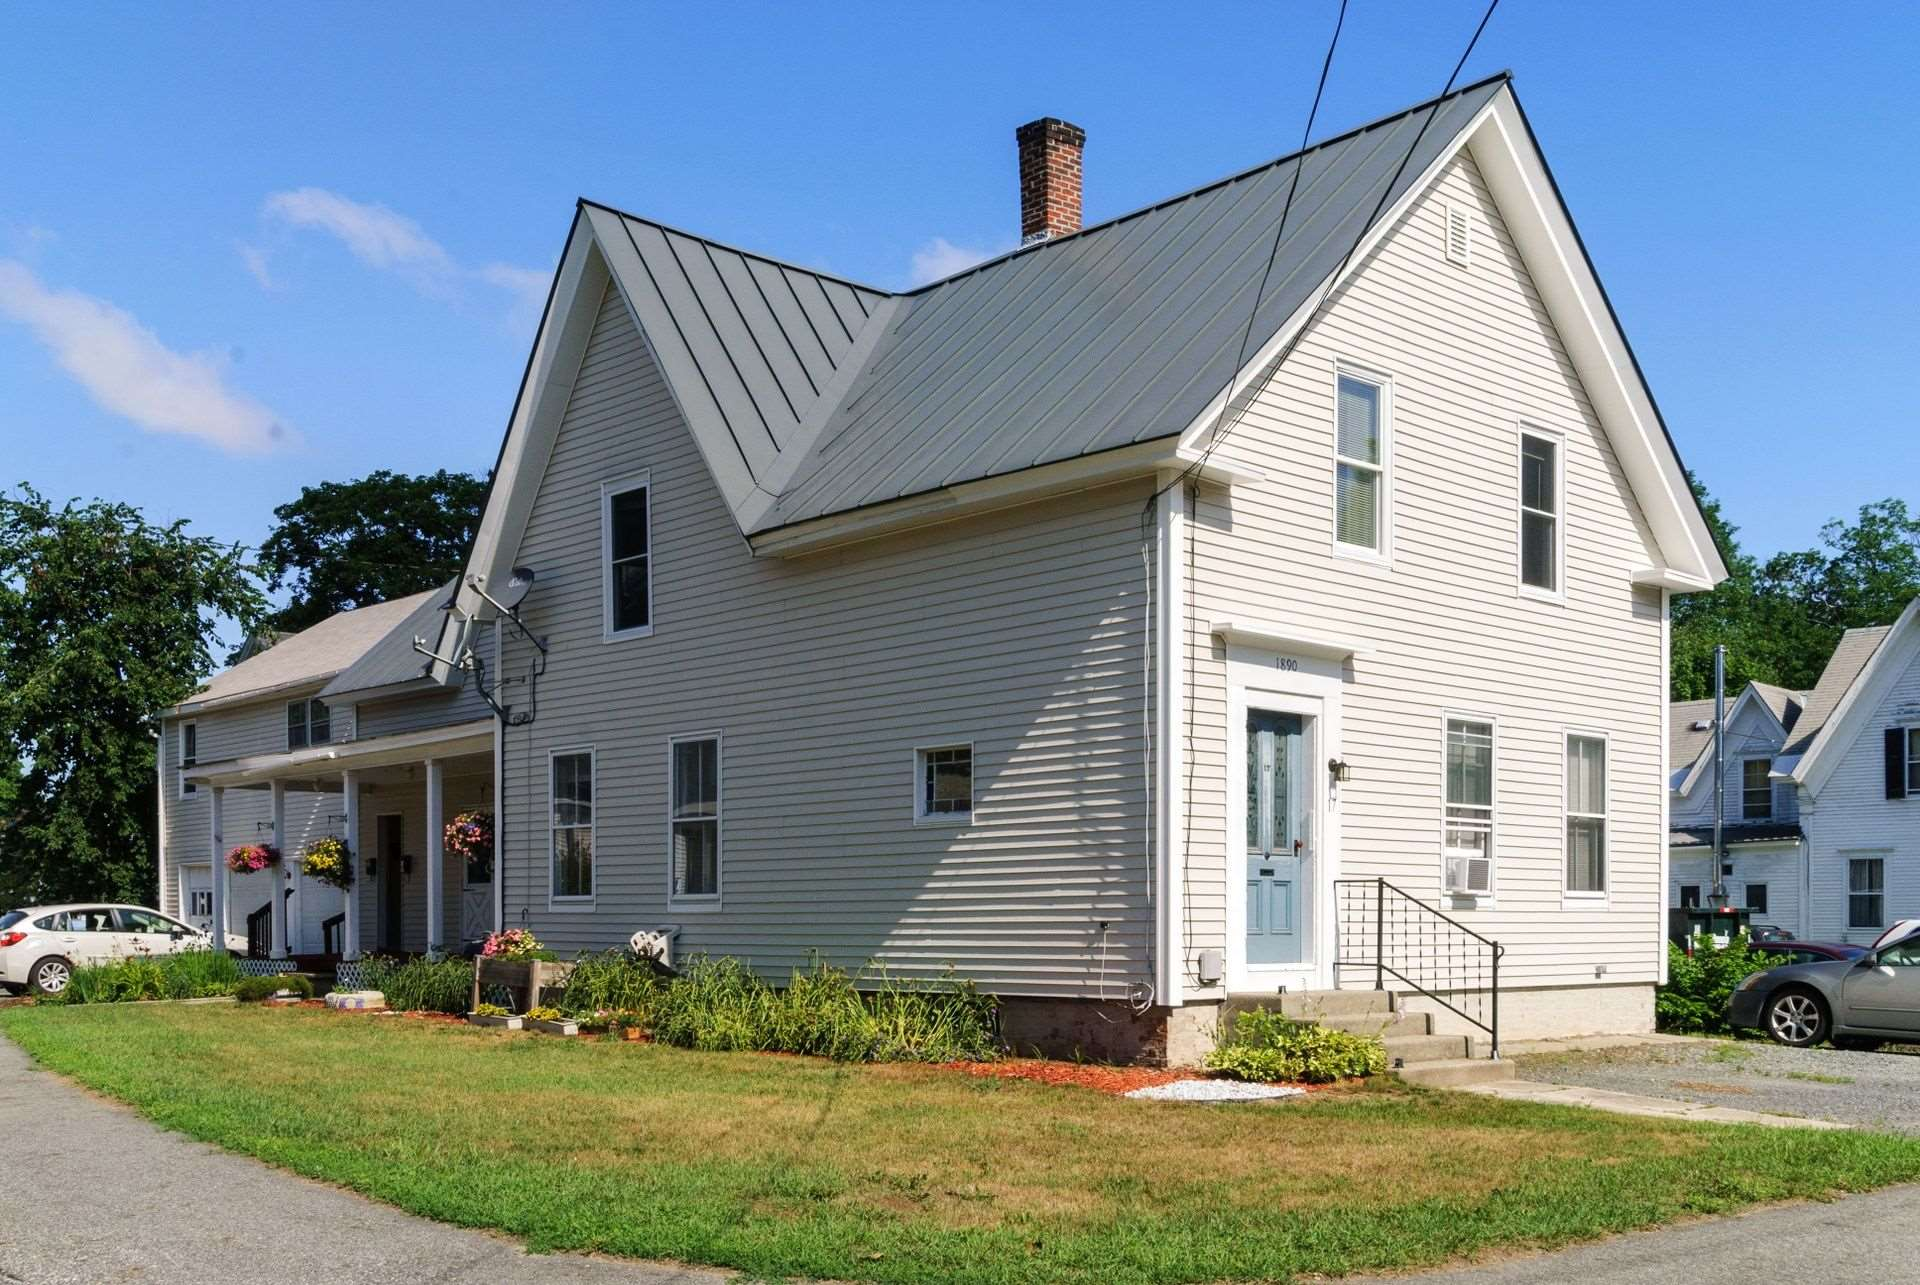 image of Claremont NH  3 Unit Multi Family | sq.ft. 4042